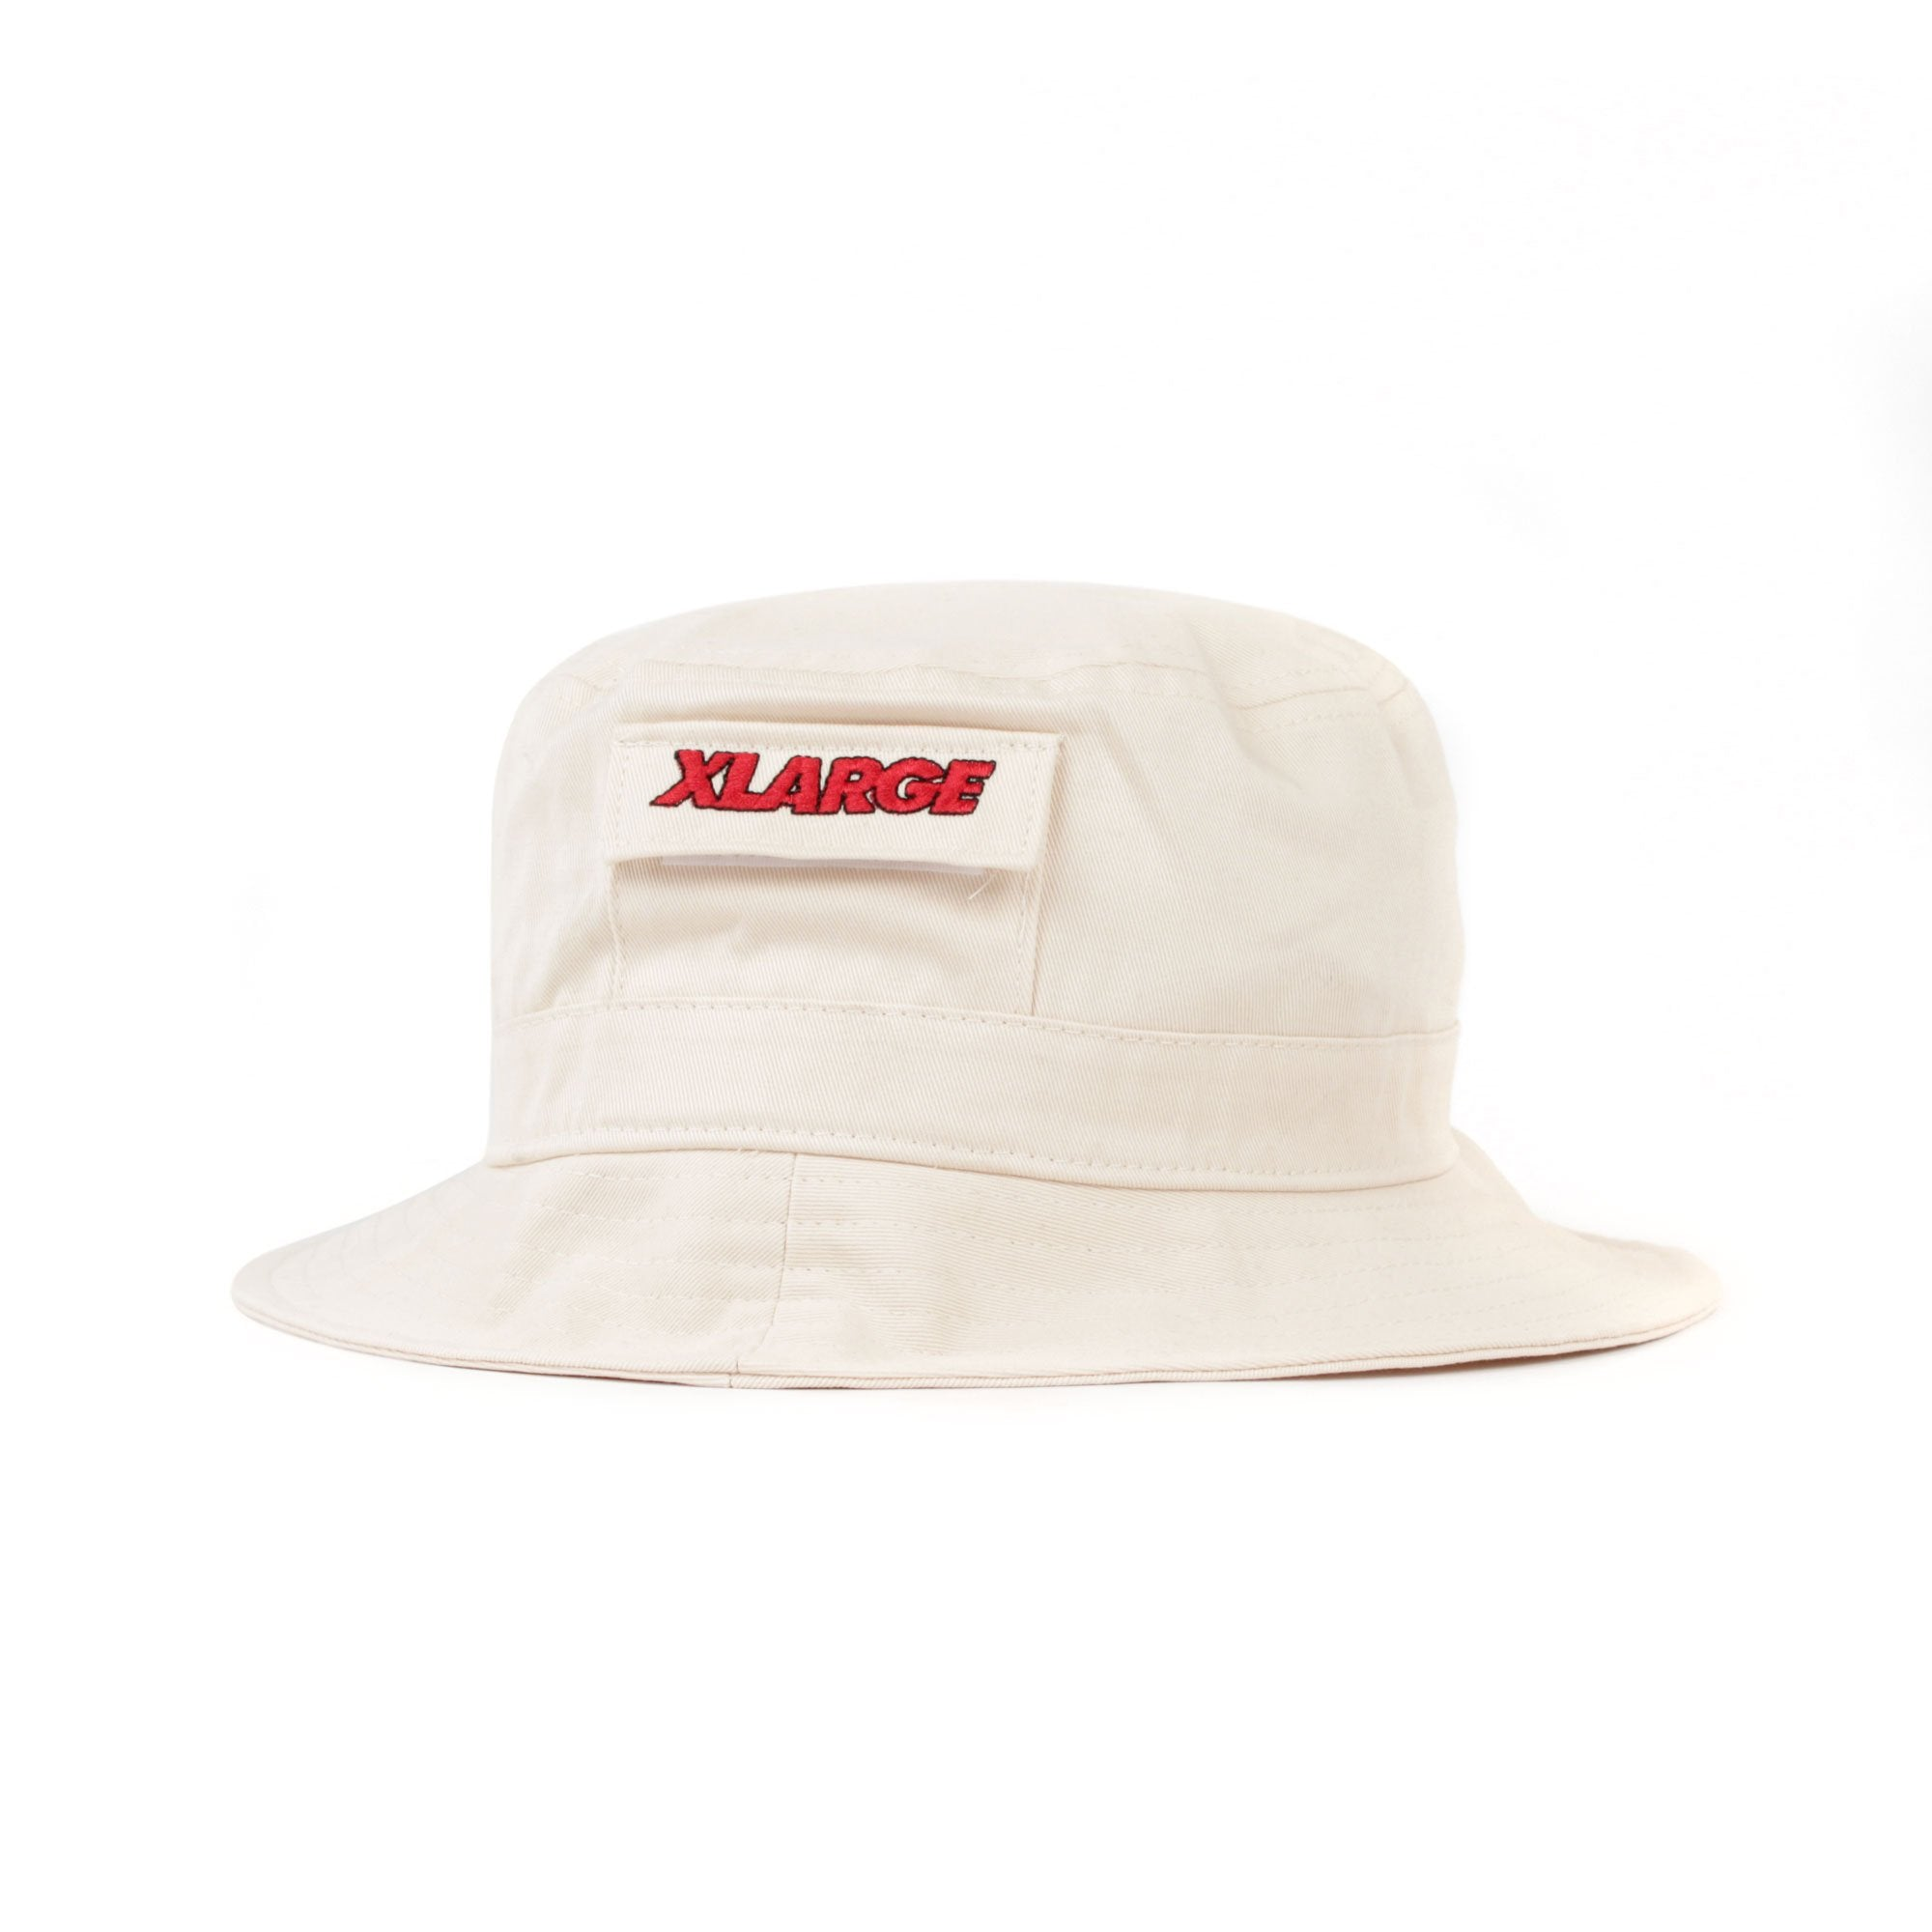 X Large Stash Bucket Hat Product Photo #1